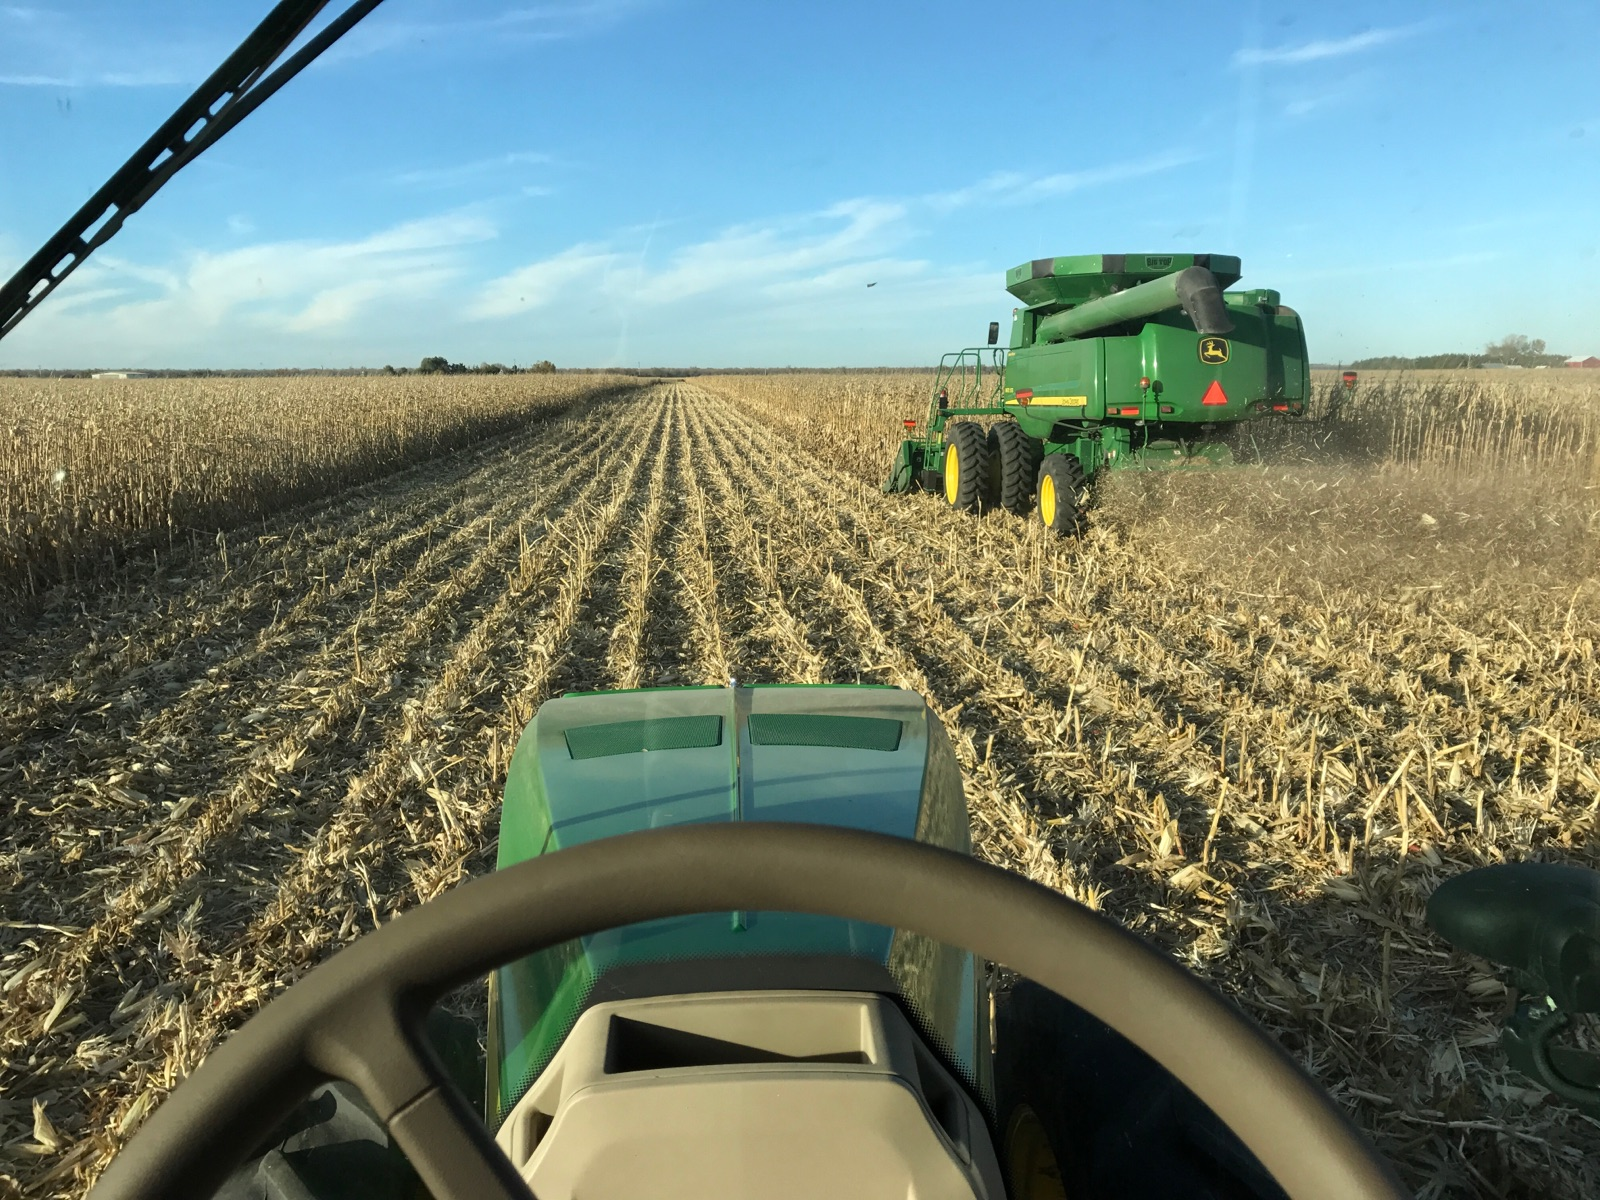 Agriculture contributes more than $25 billion to Nebraska's economy, according to Nebraska's Department of Agriculture.